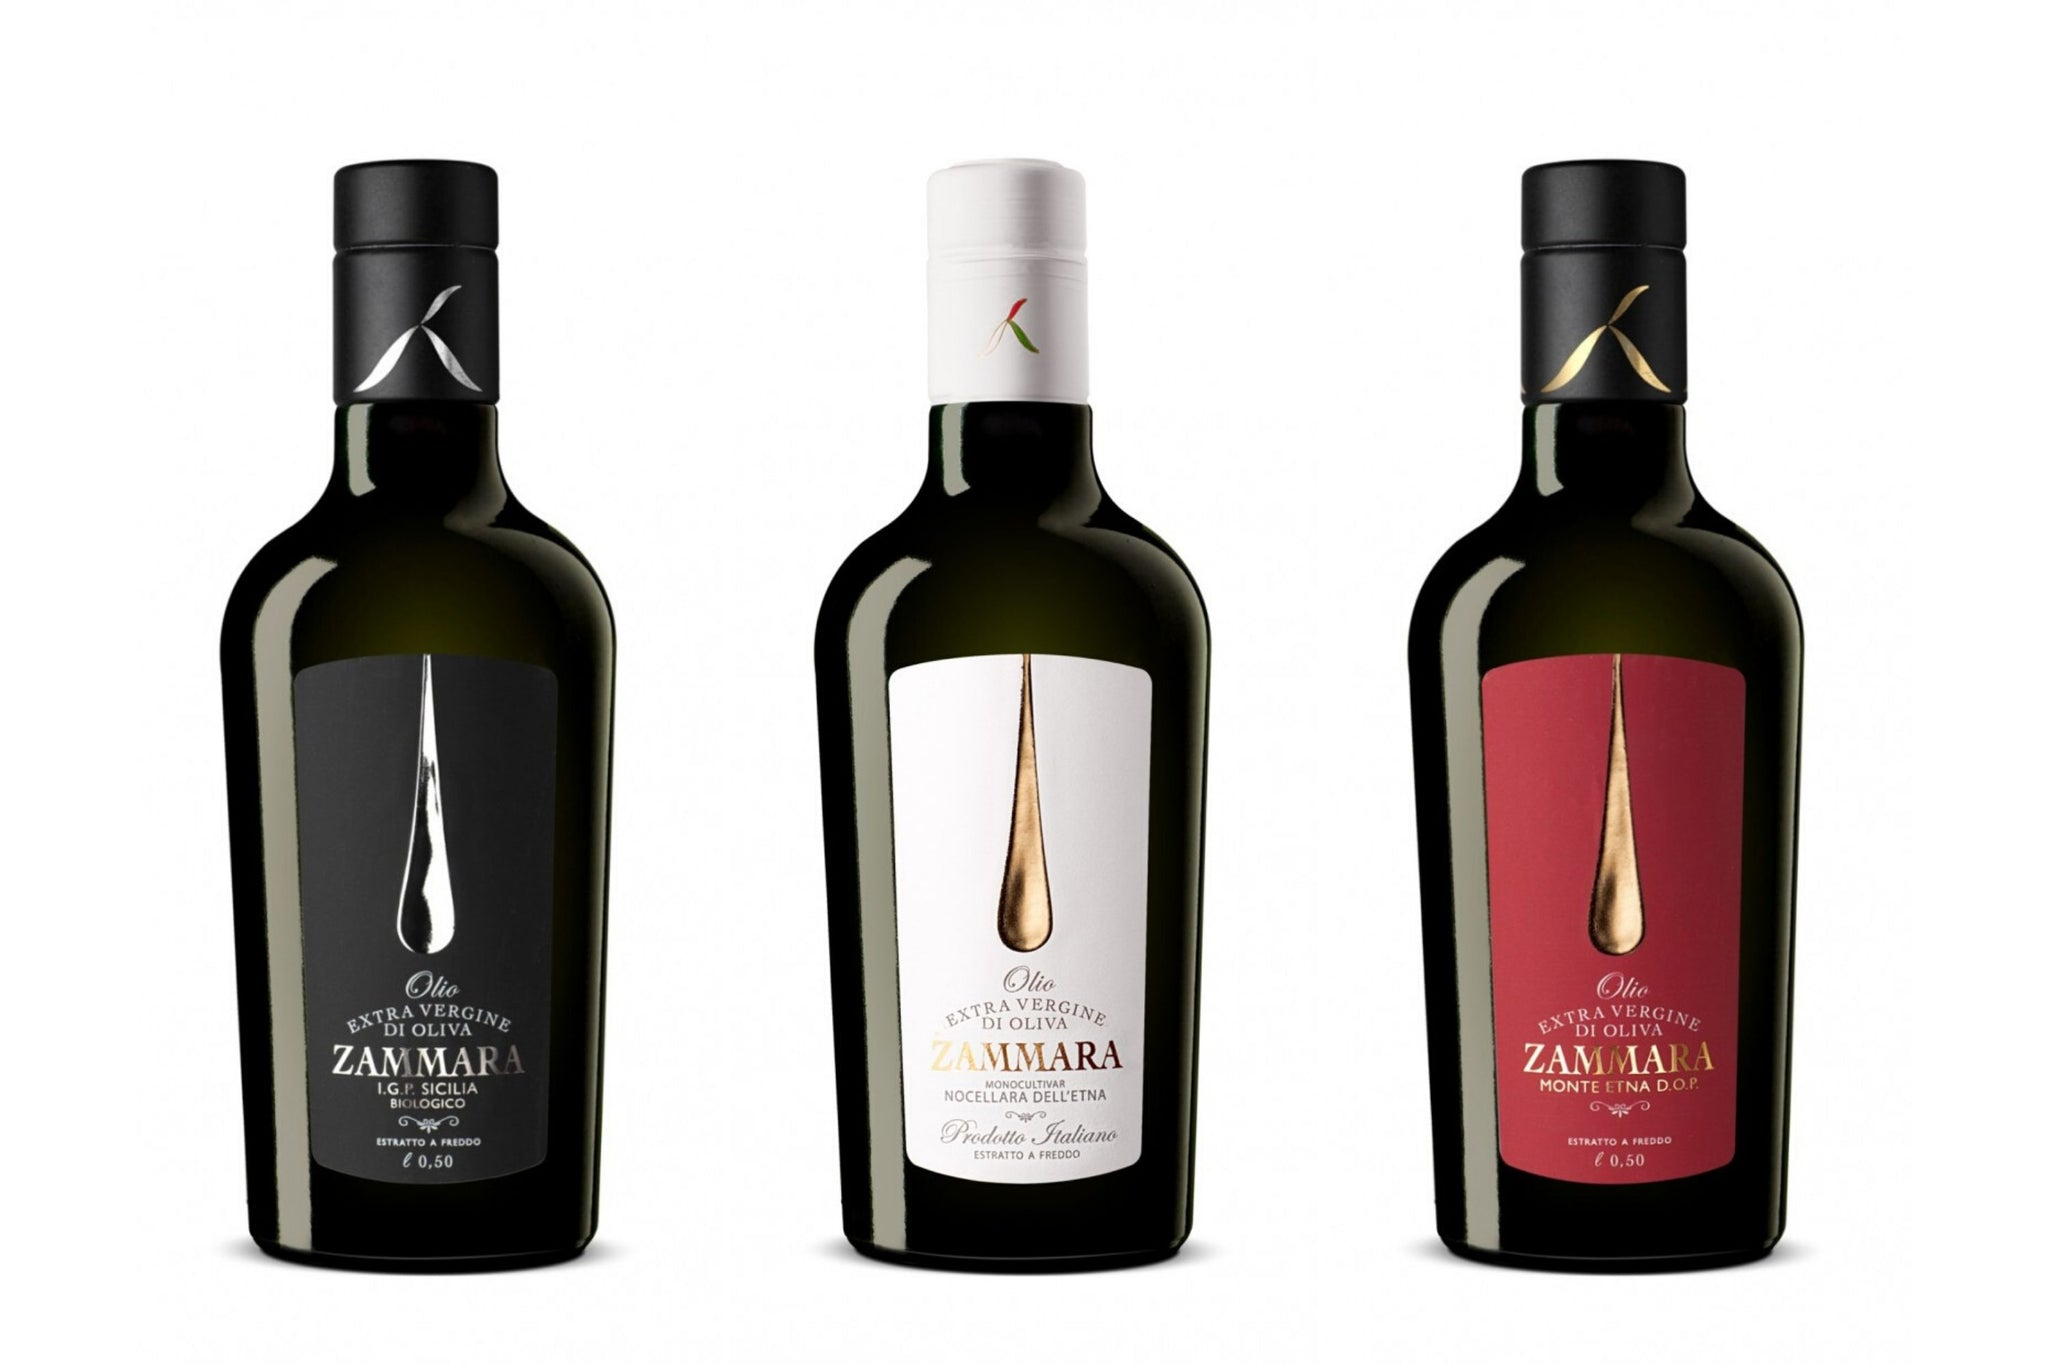 Zammara Collection. Organic IGP Sicily, Monte DOP & Nocellara Etnea Extra Virgin Olive Oil 500ml